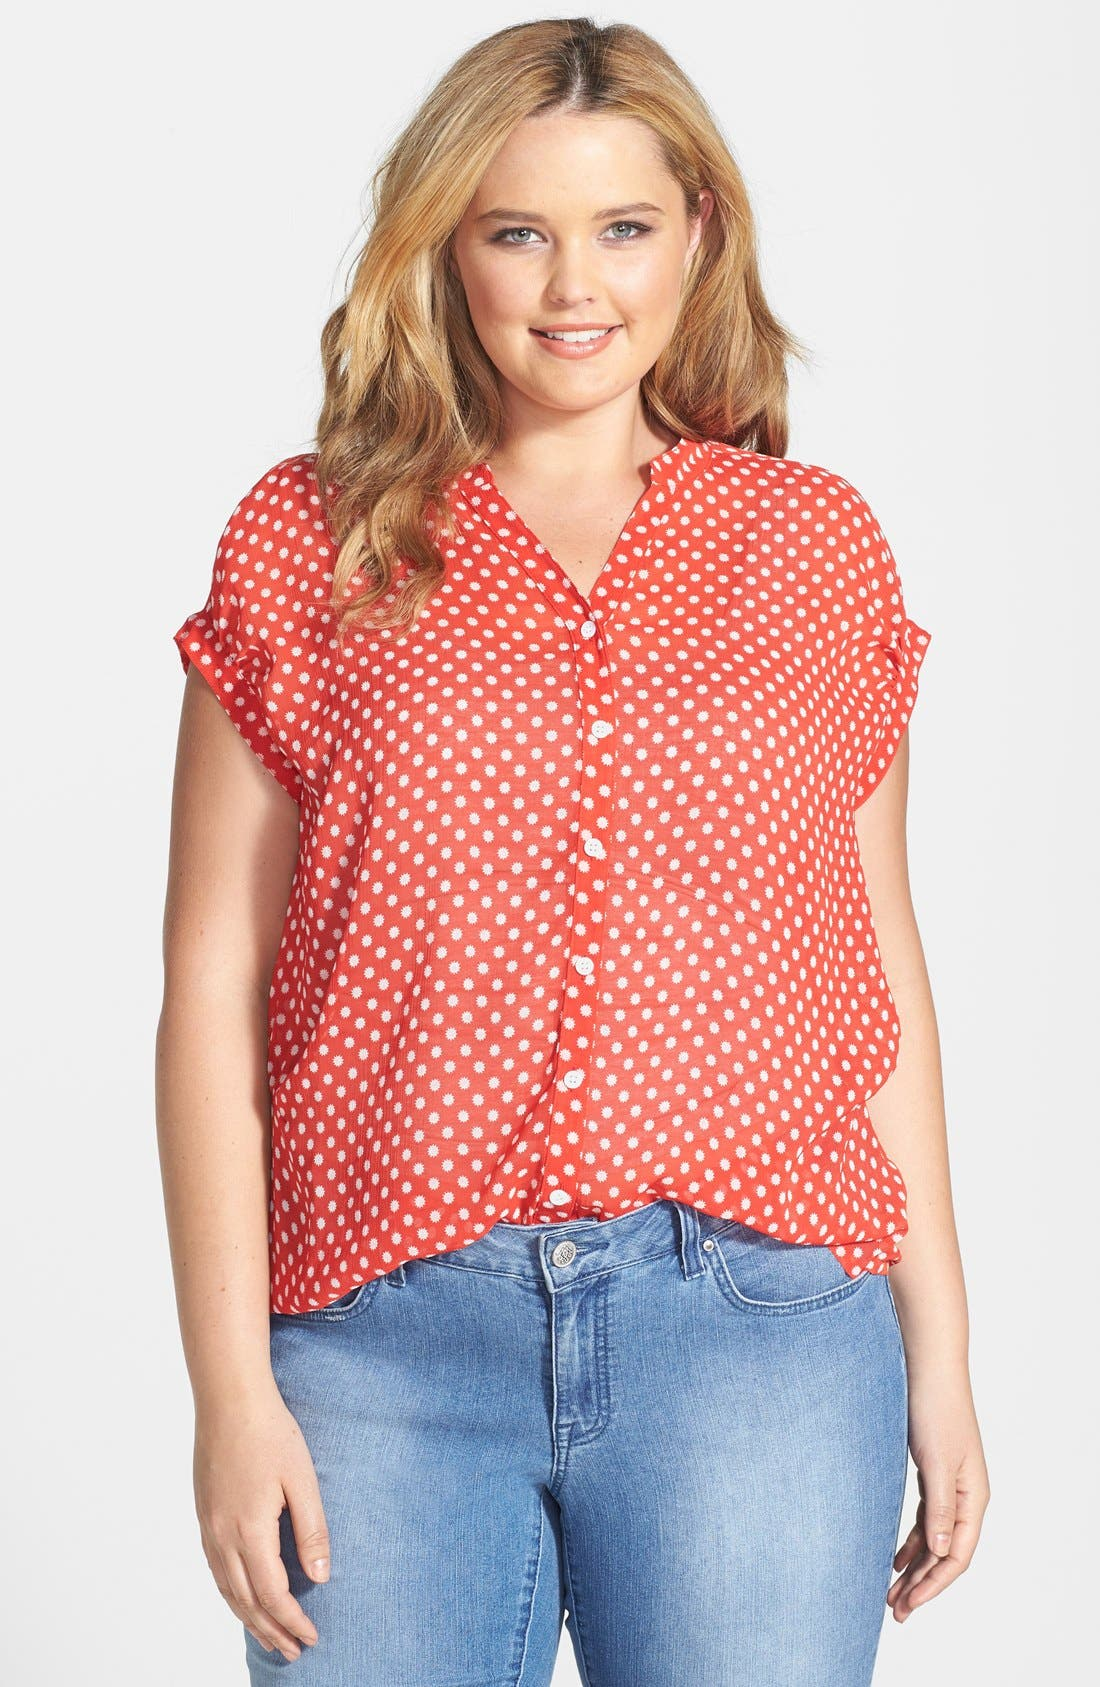 Main Image - Two by Vince Camuto 'Star Dot' Blouse (Plus Size)